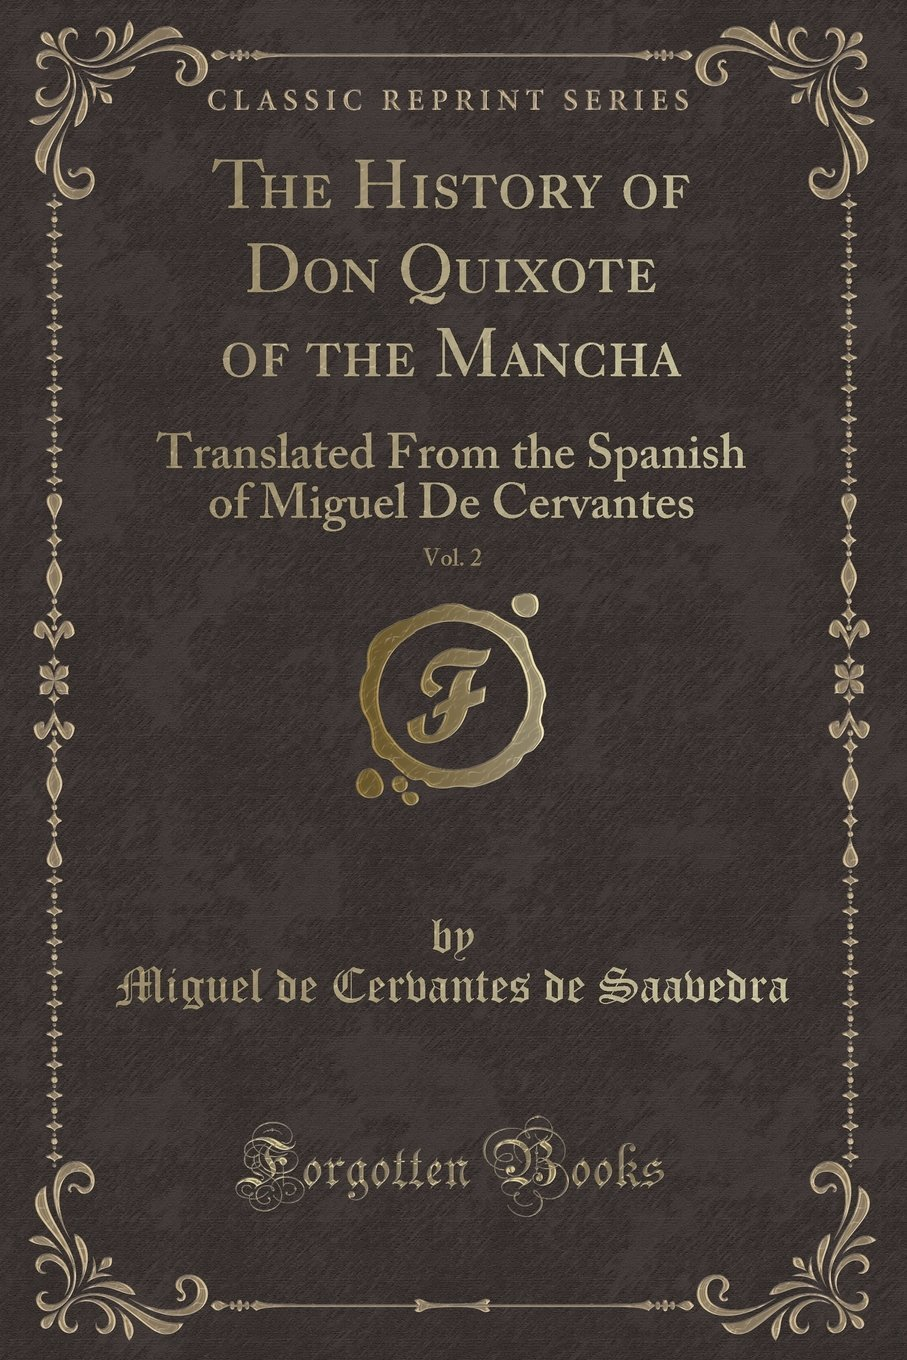 Read Online The History of Don Quixote of the Mancha, Vol. 2: Translated From the Spanish of Miguel De Cervantes (Classic Reprint) PDF